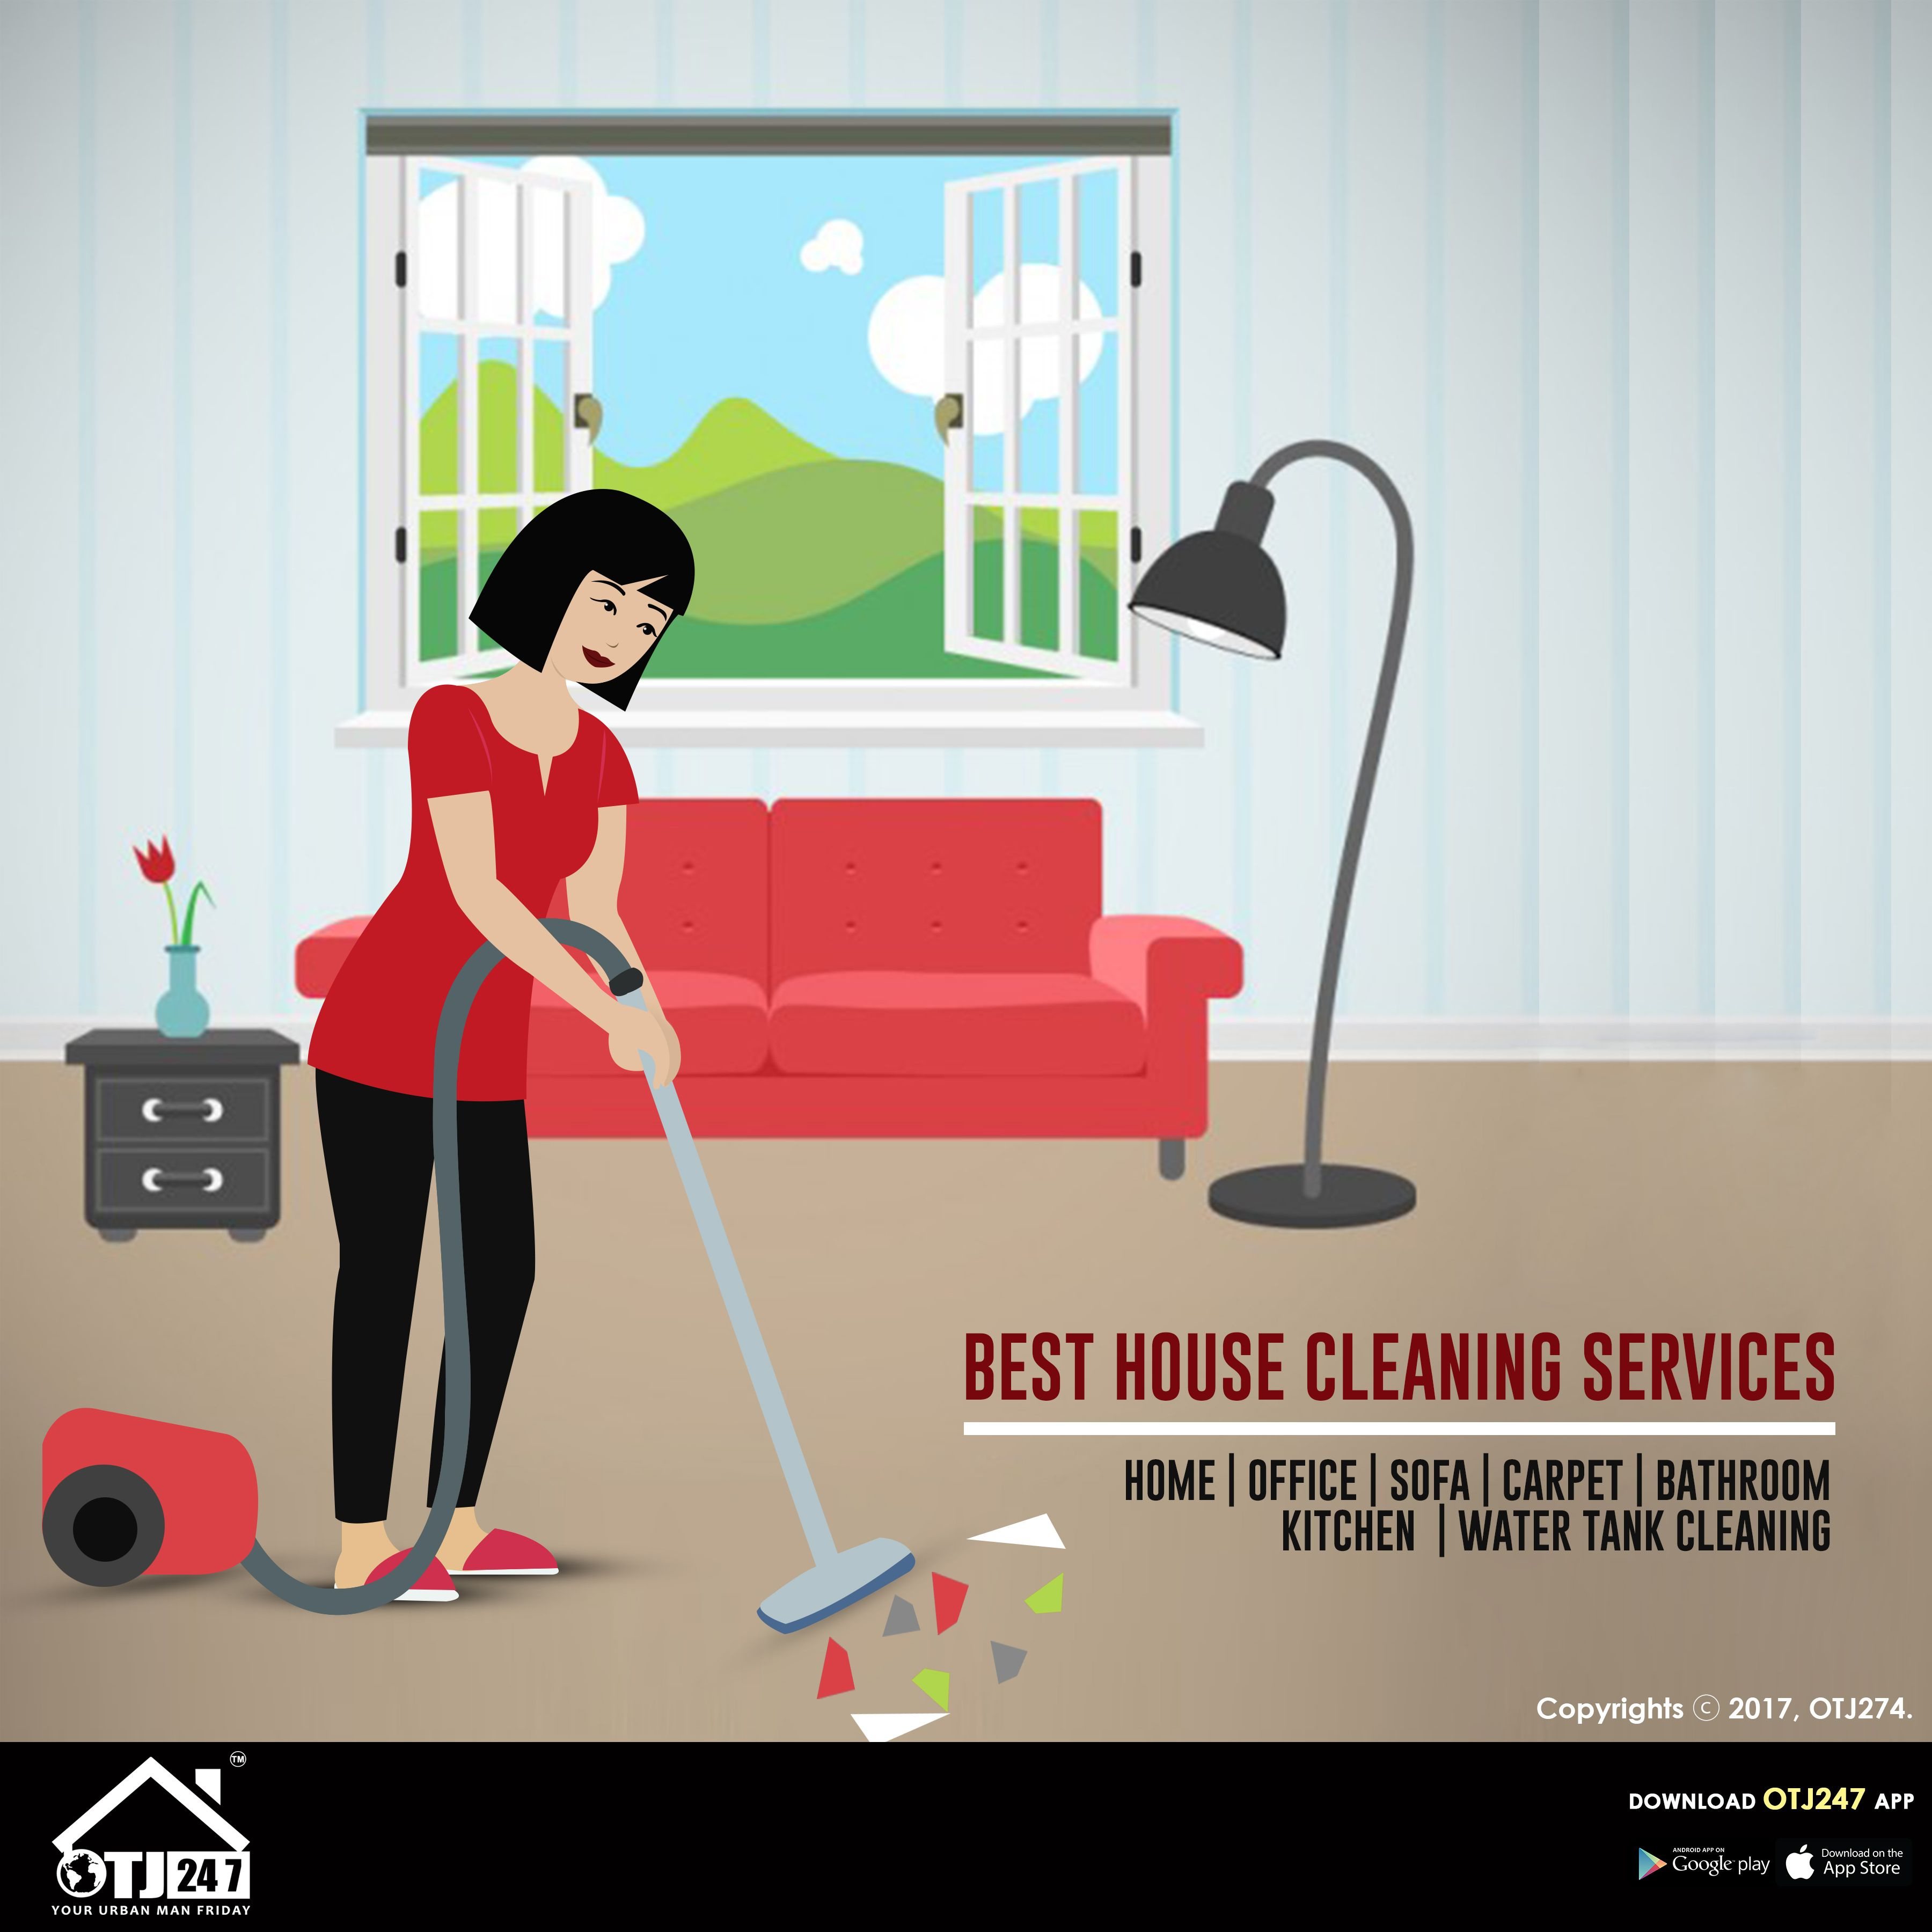 Best House Cleaning Services In Bangalore Home Office Sofa Carpet Bathroom Kitchen Cleaning Clean House House Cleaning Services Fire Safety Services